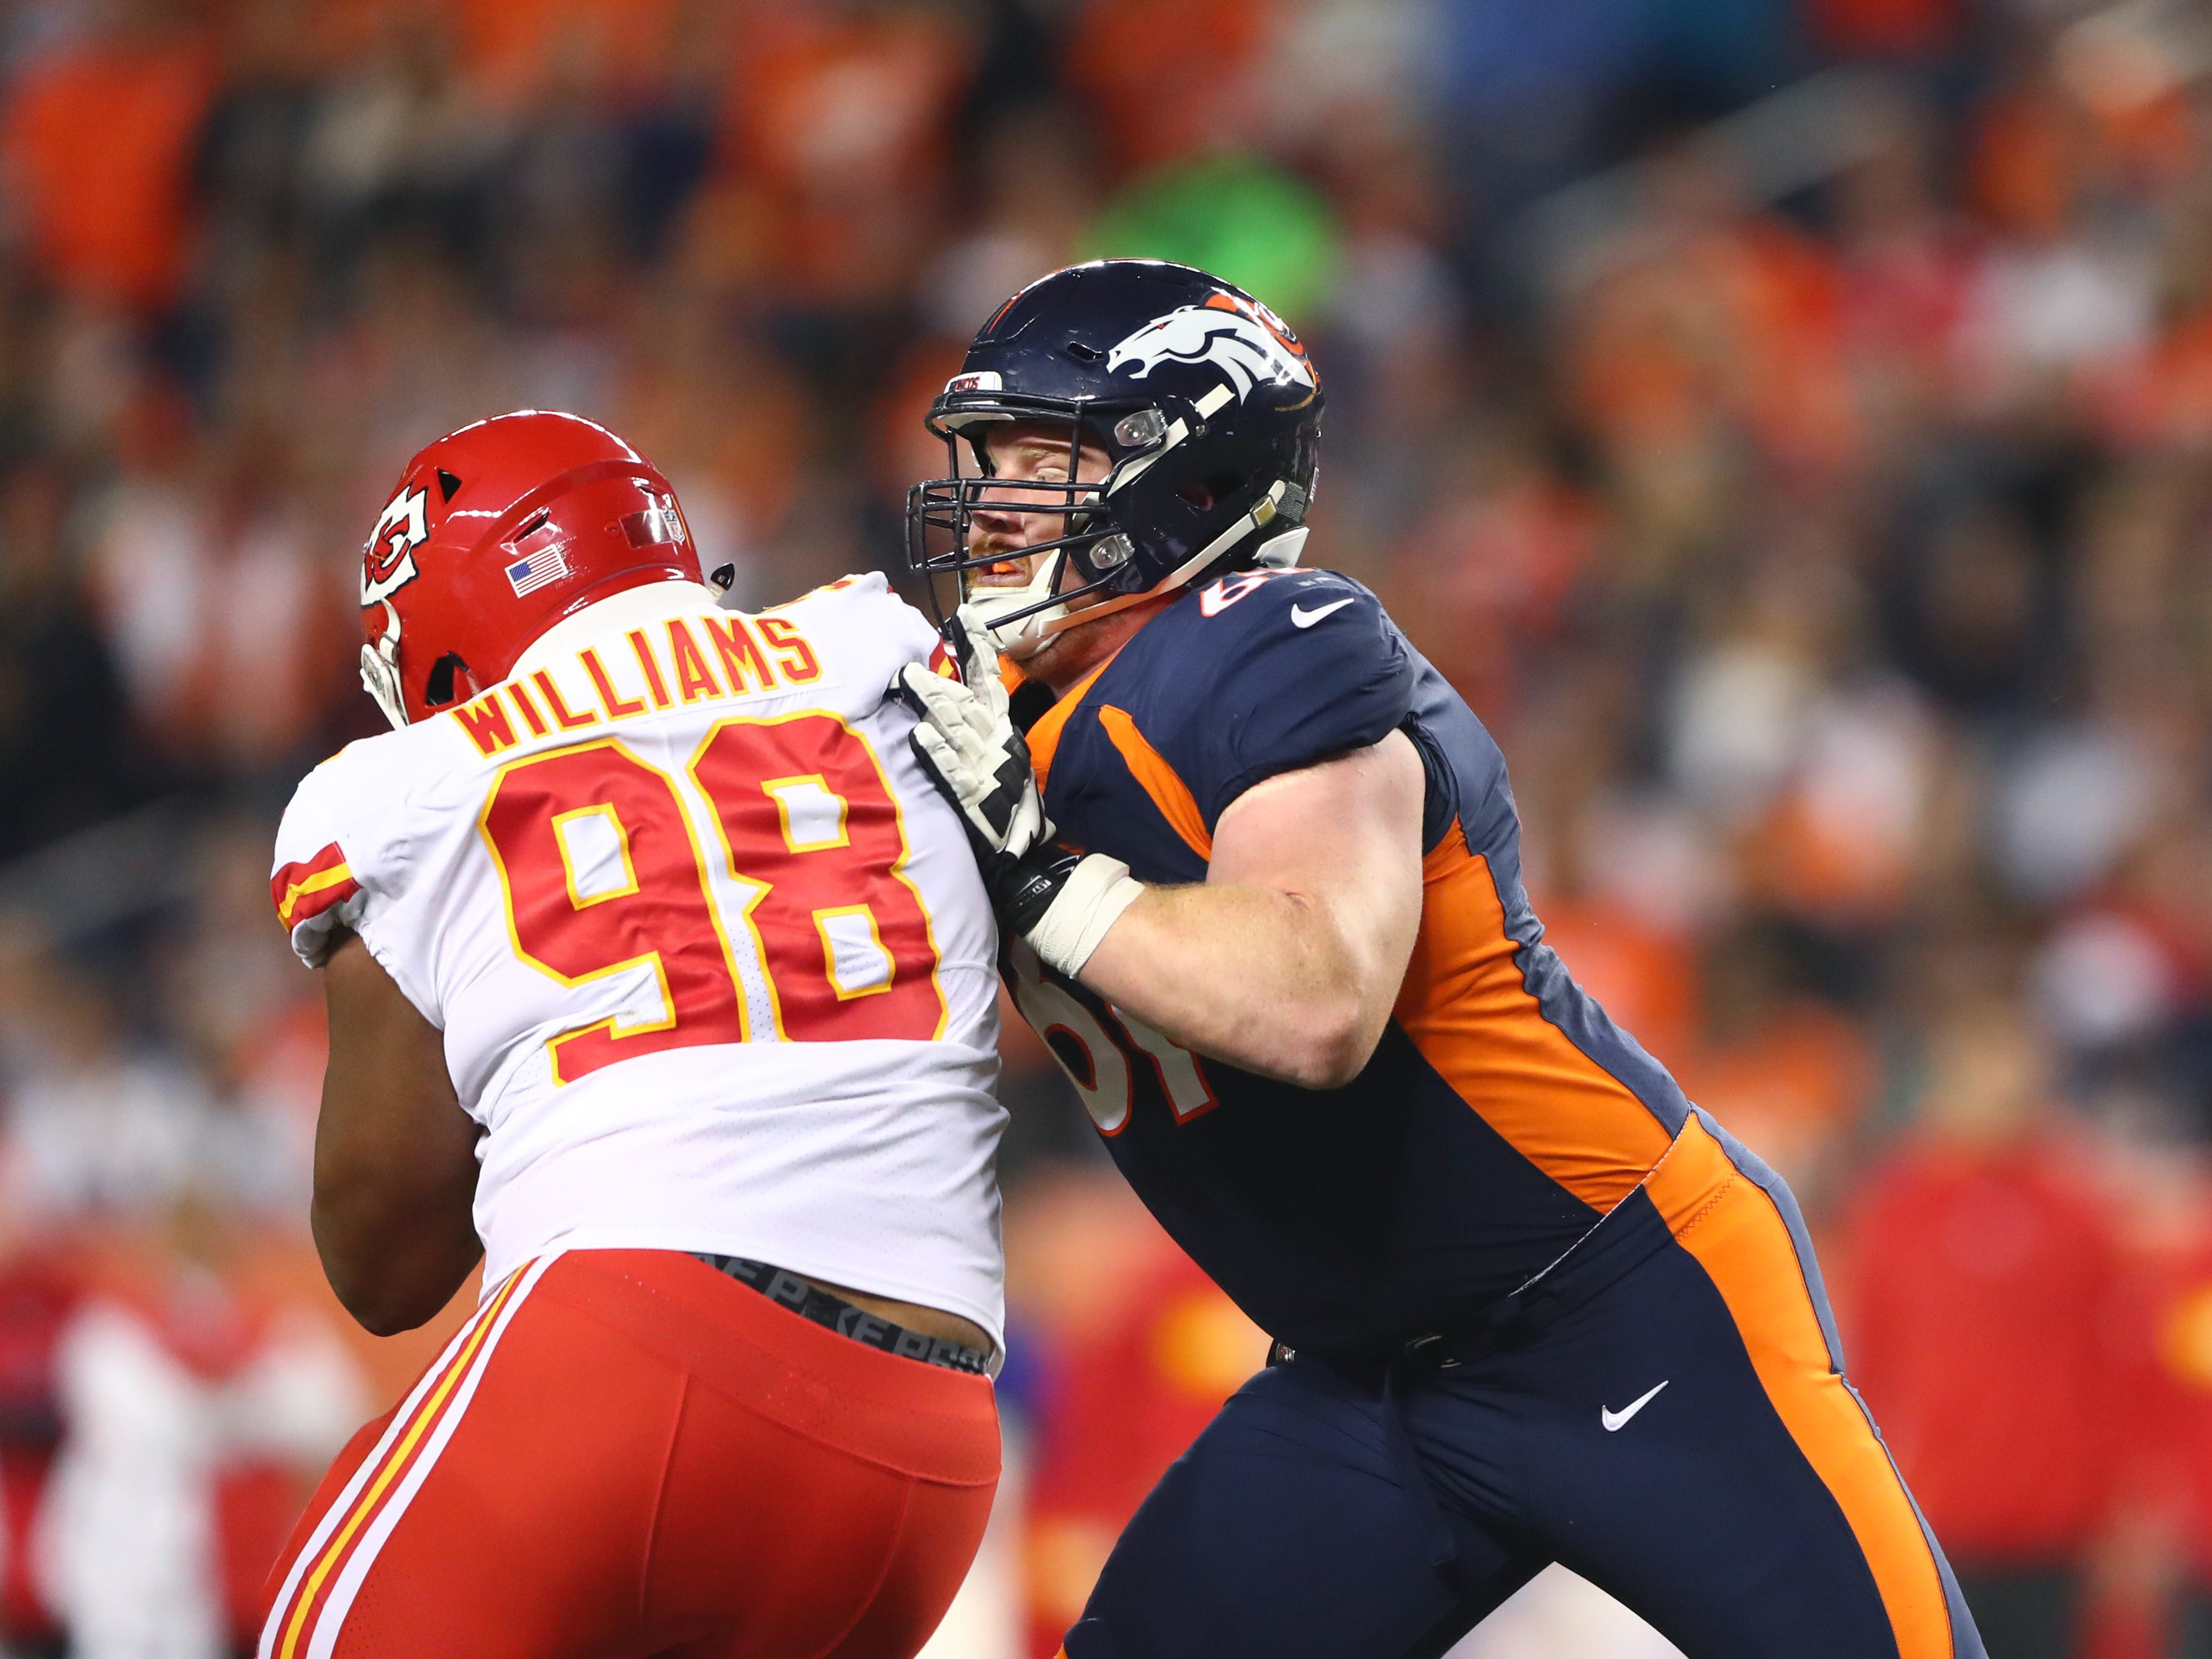 7. Matt Paradis, C, Broncos: Agreed to deal with Panthers